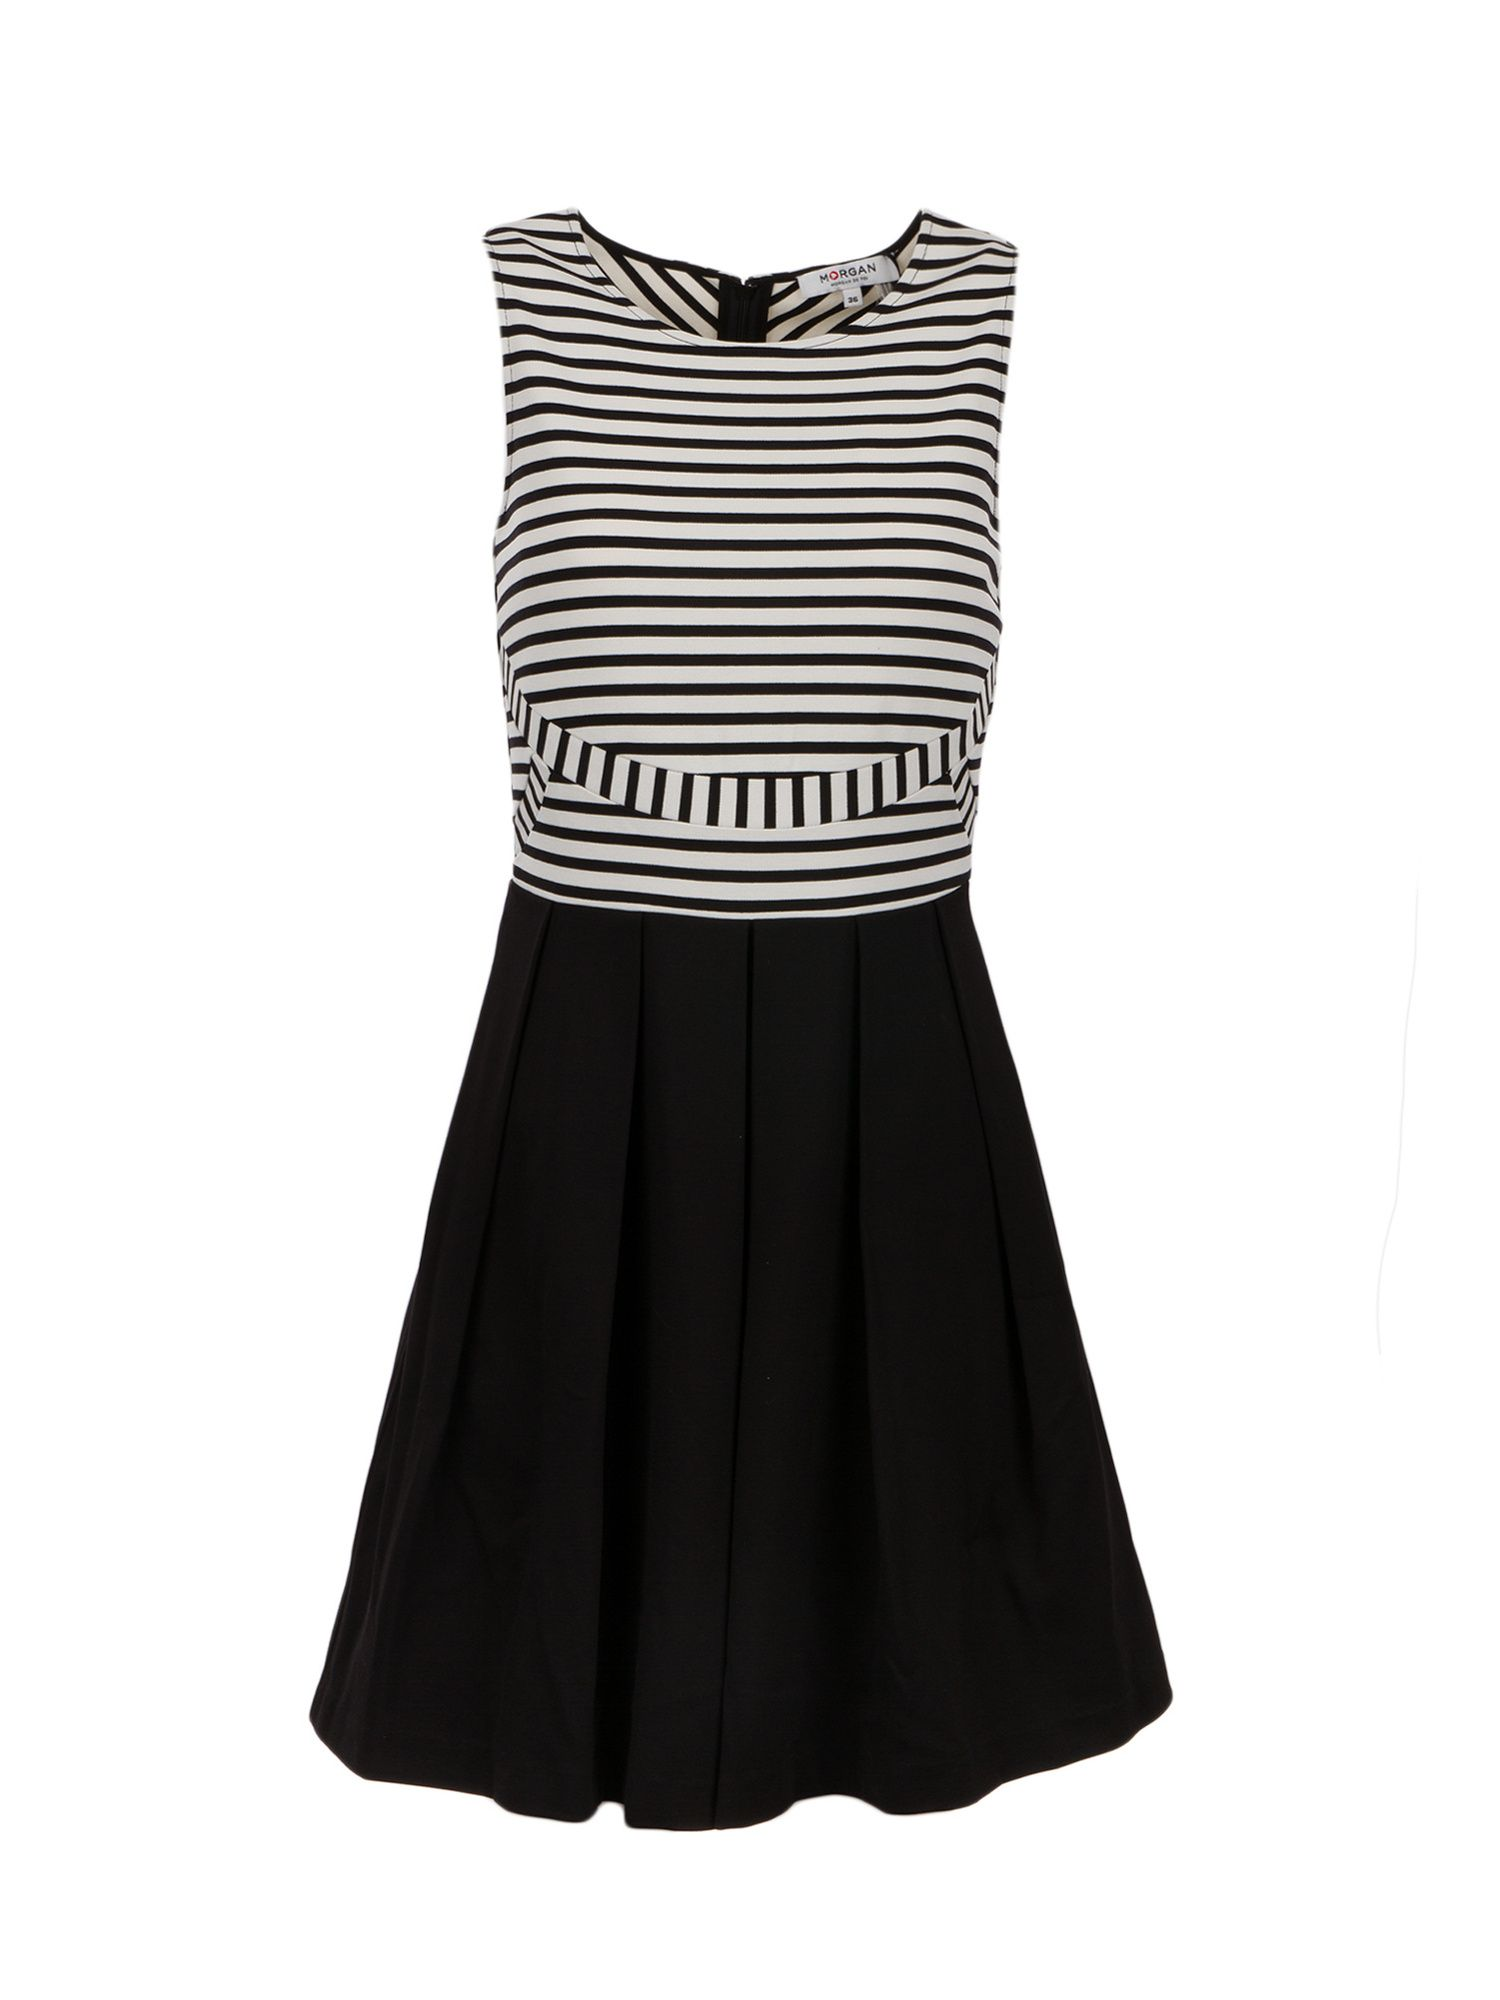 Morgan Striped Stretch Knit Dress, Black